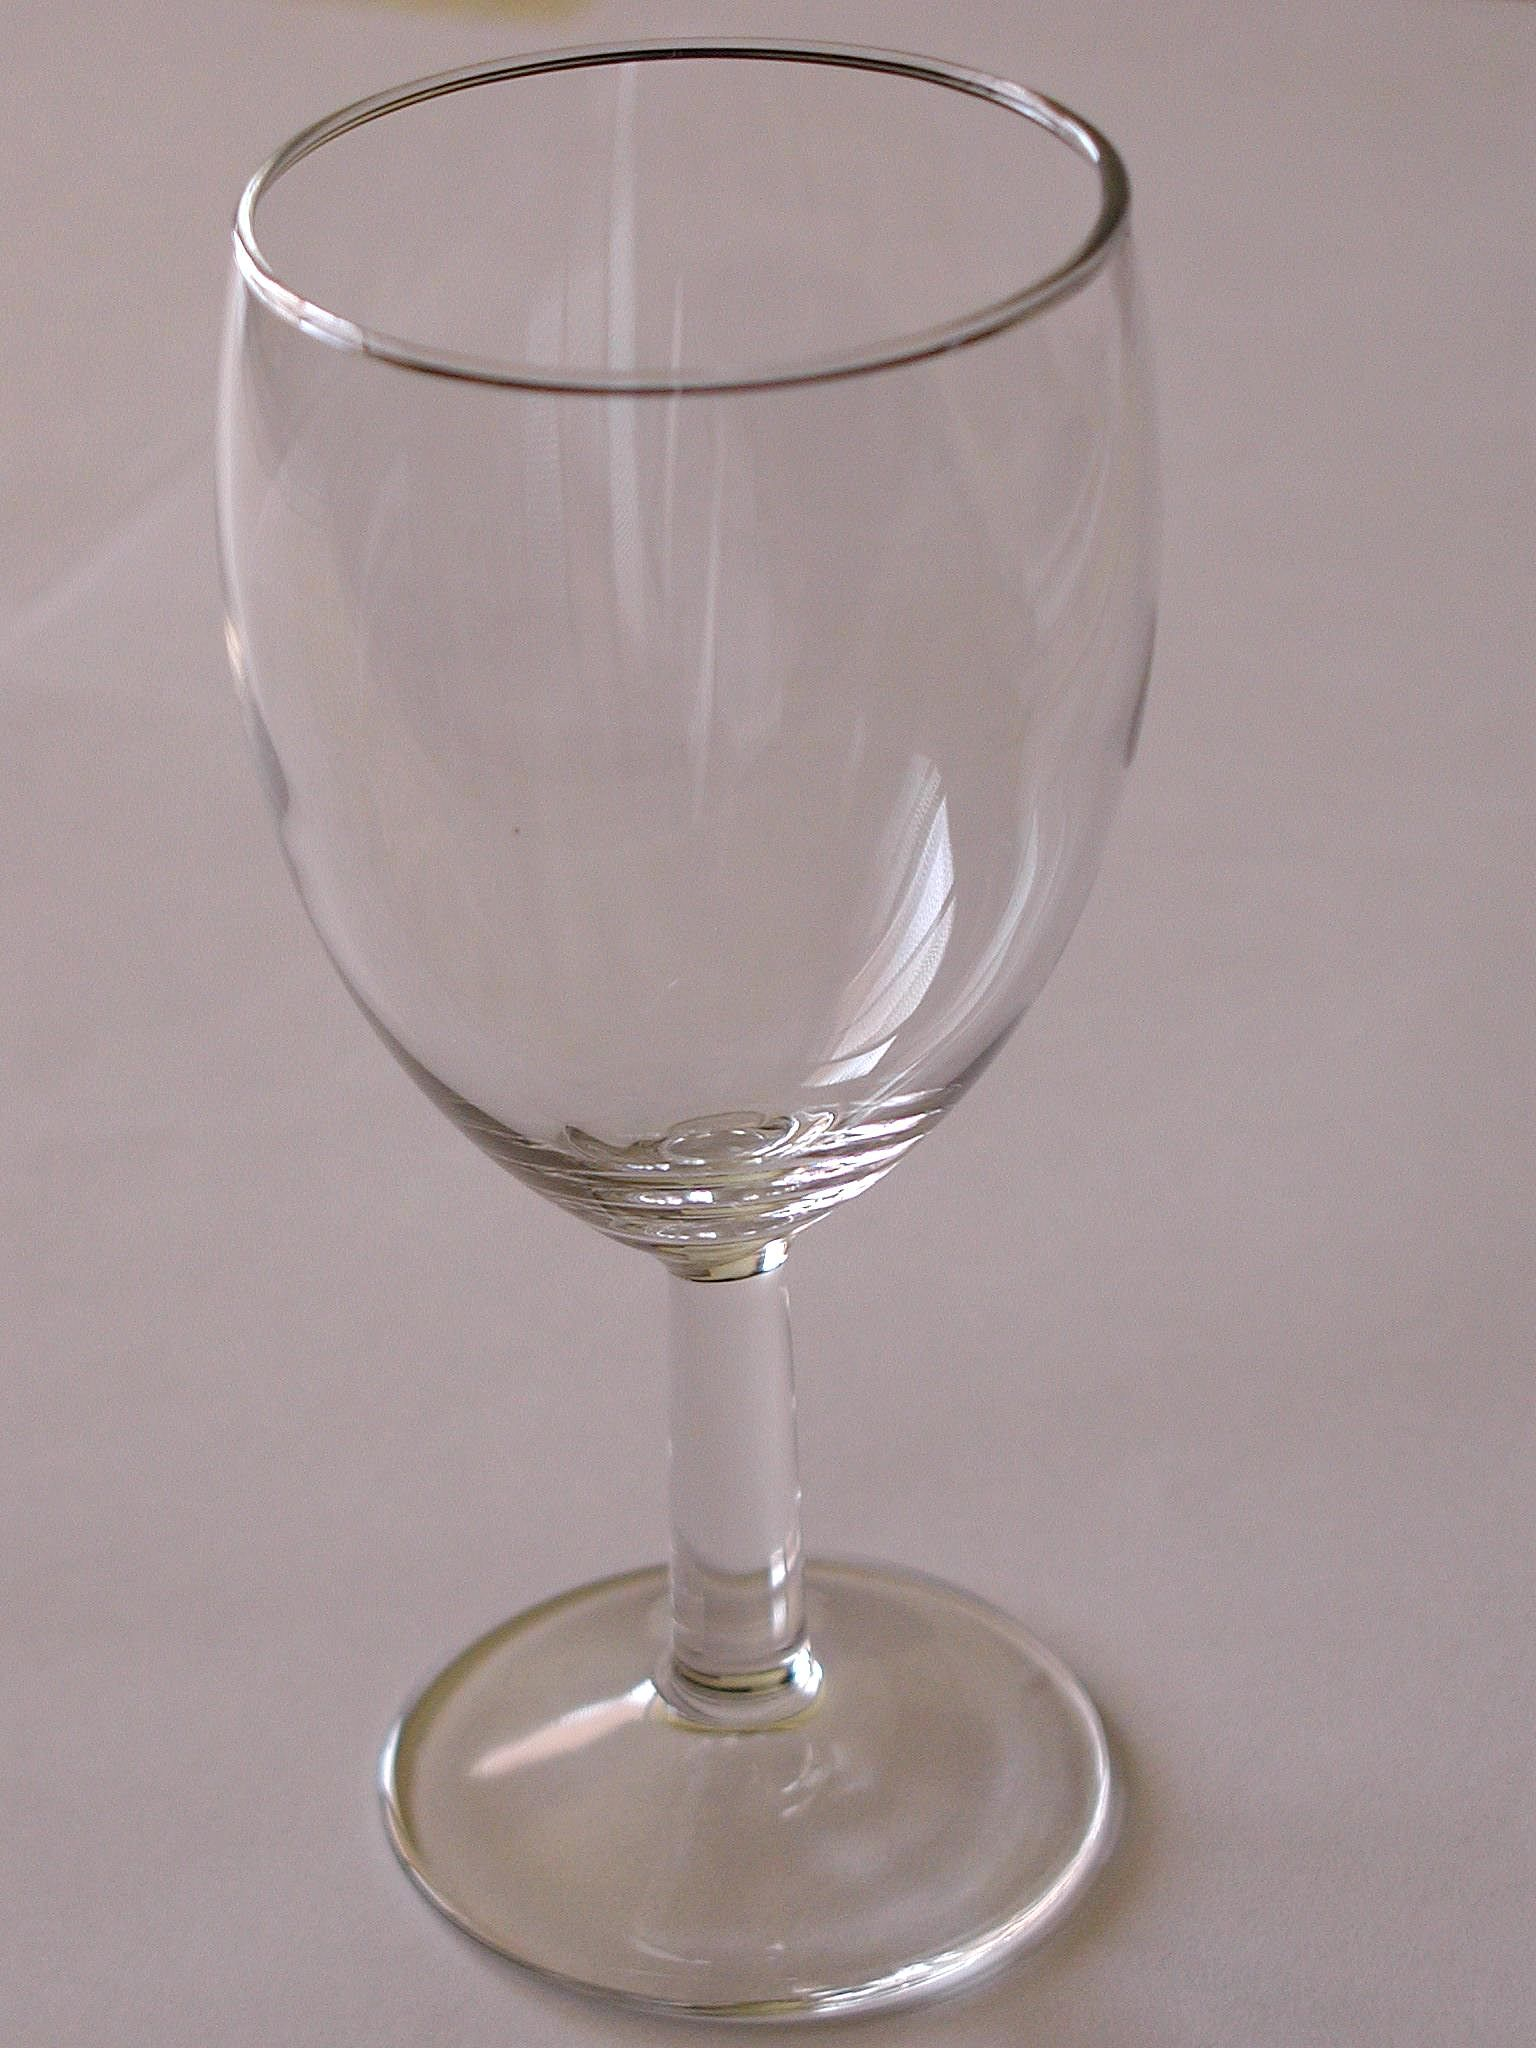 Http Commons Wikimedia Org Wiki File Hollow Empty Glass Jpg